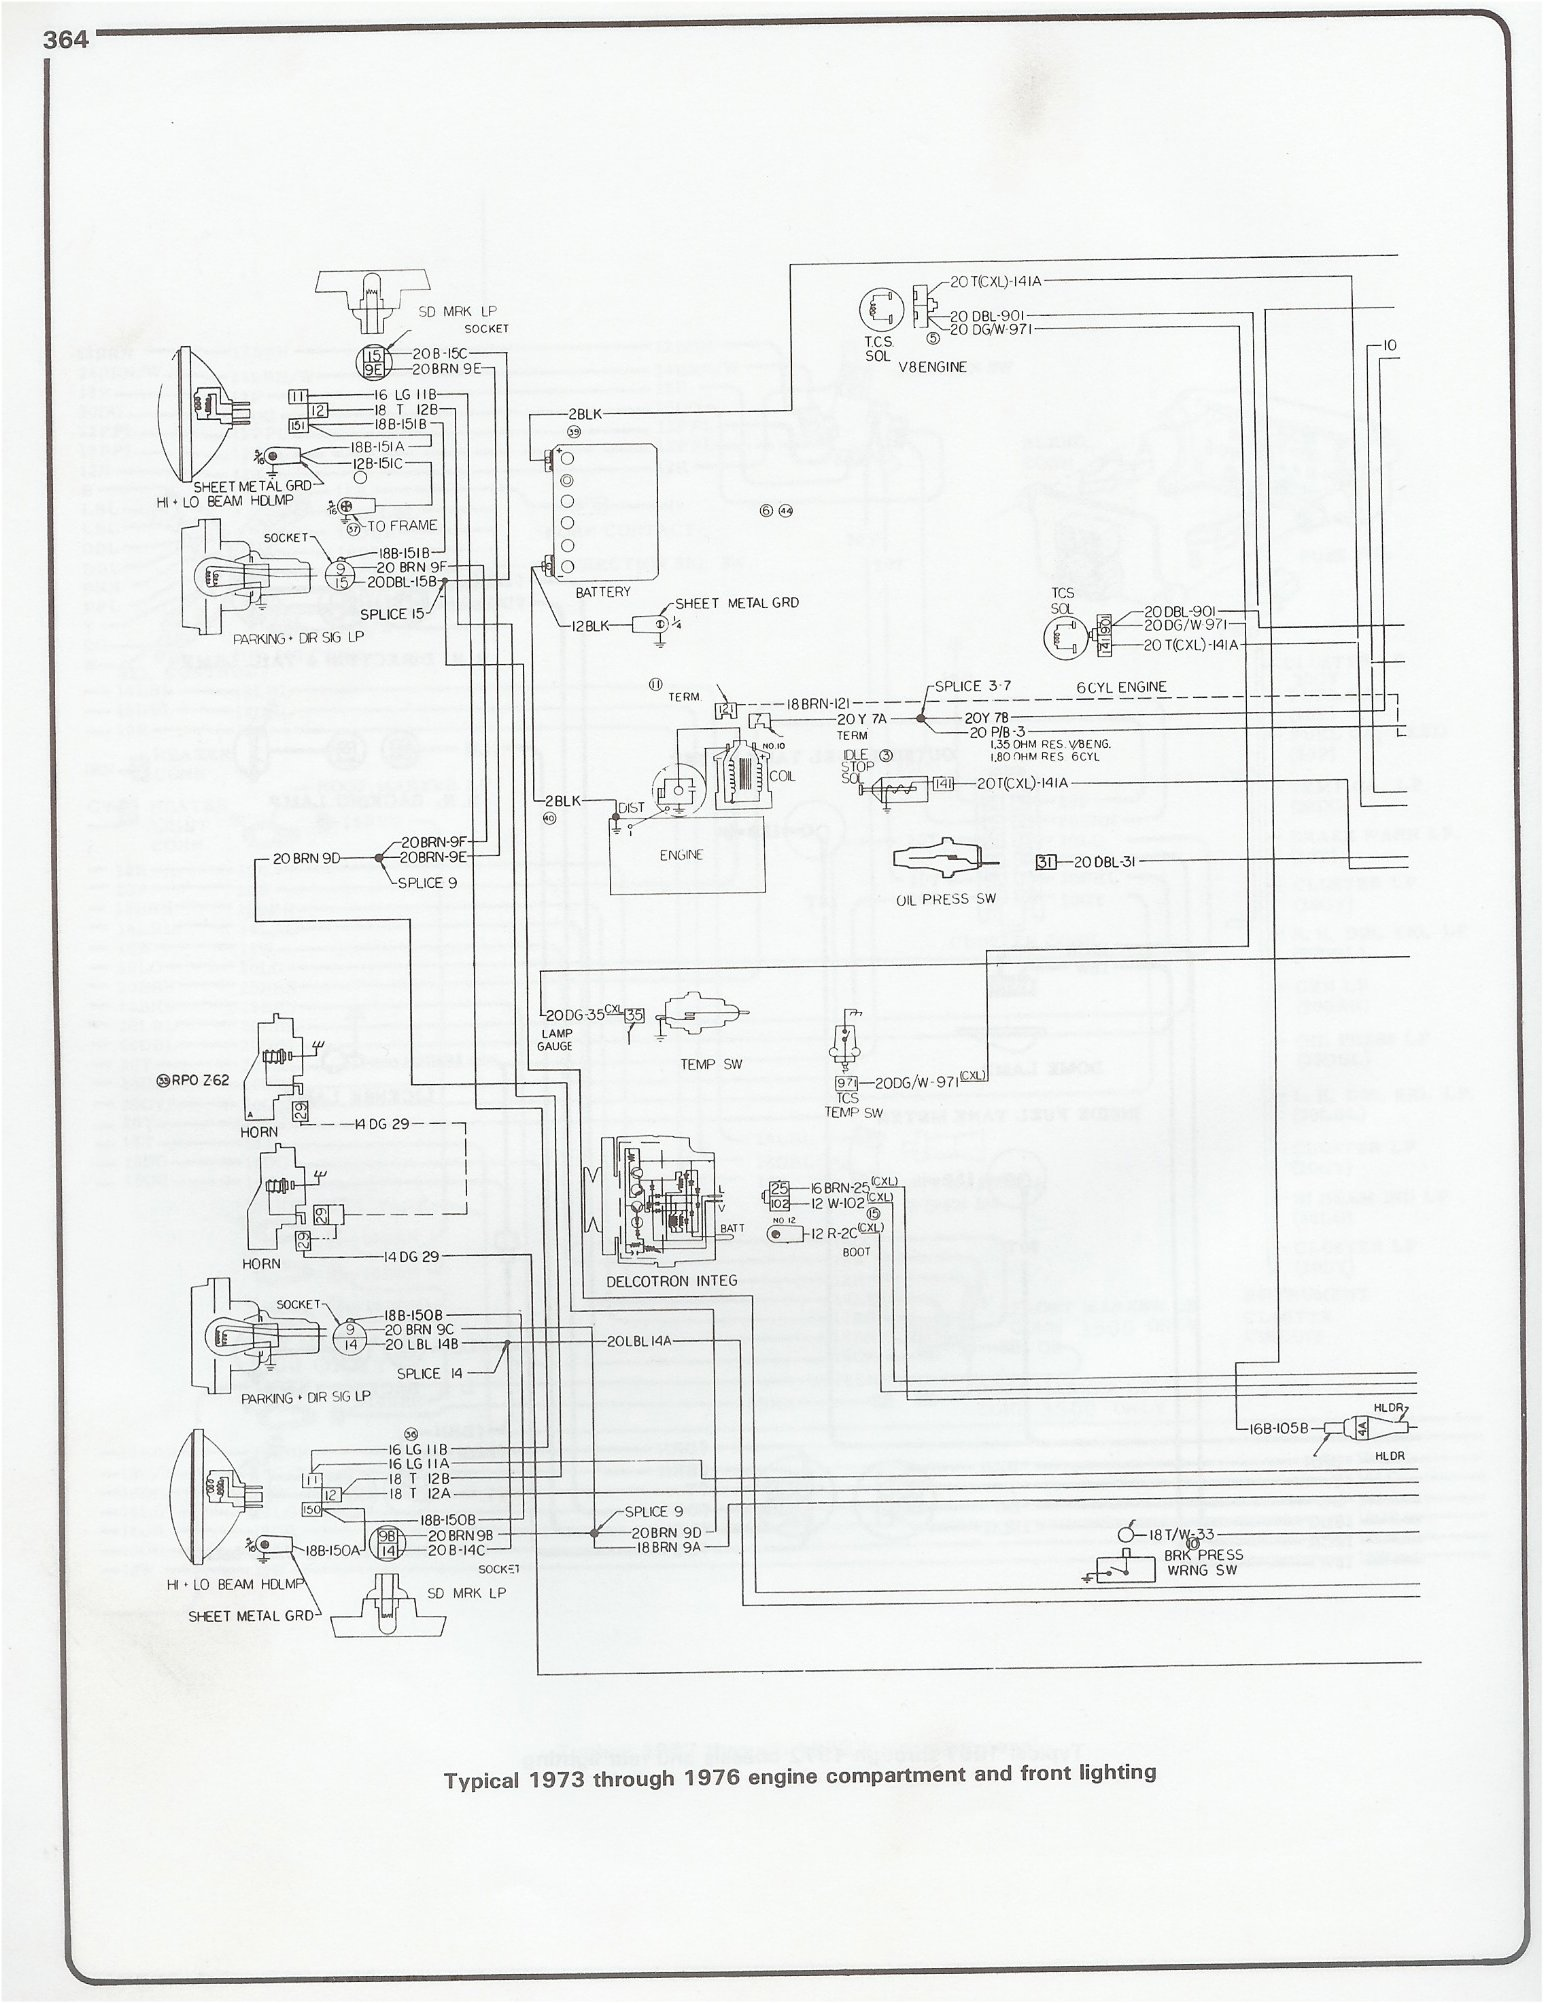 wiring diagram chevy pickup chevy wiring diagram wiring diagram 1973 1976 chevy pickup chevy wiring diagram trucks chevy pickups and chevy